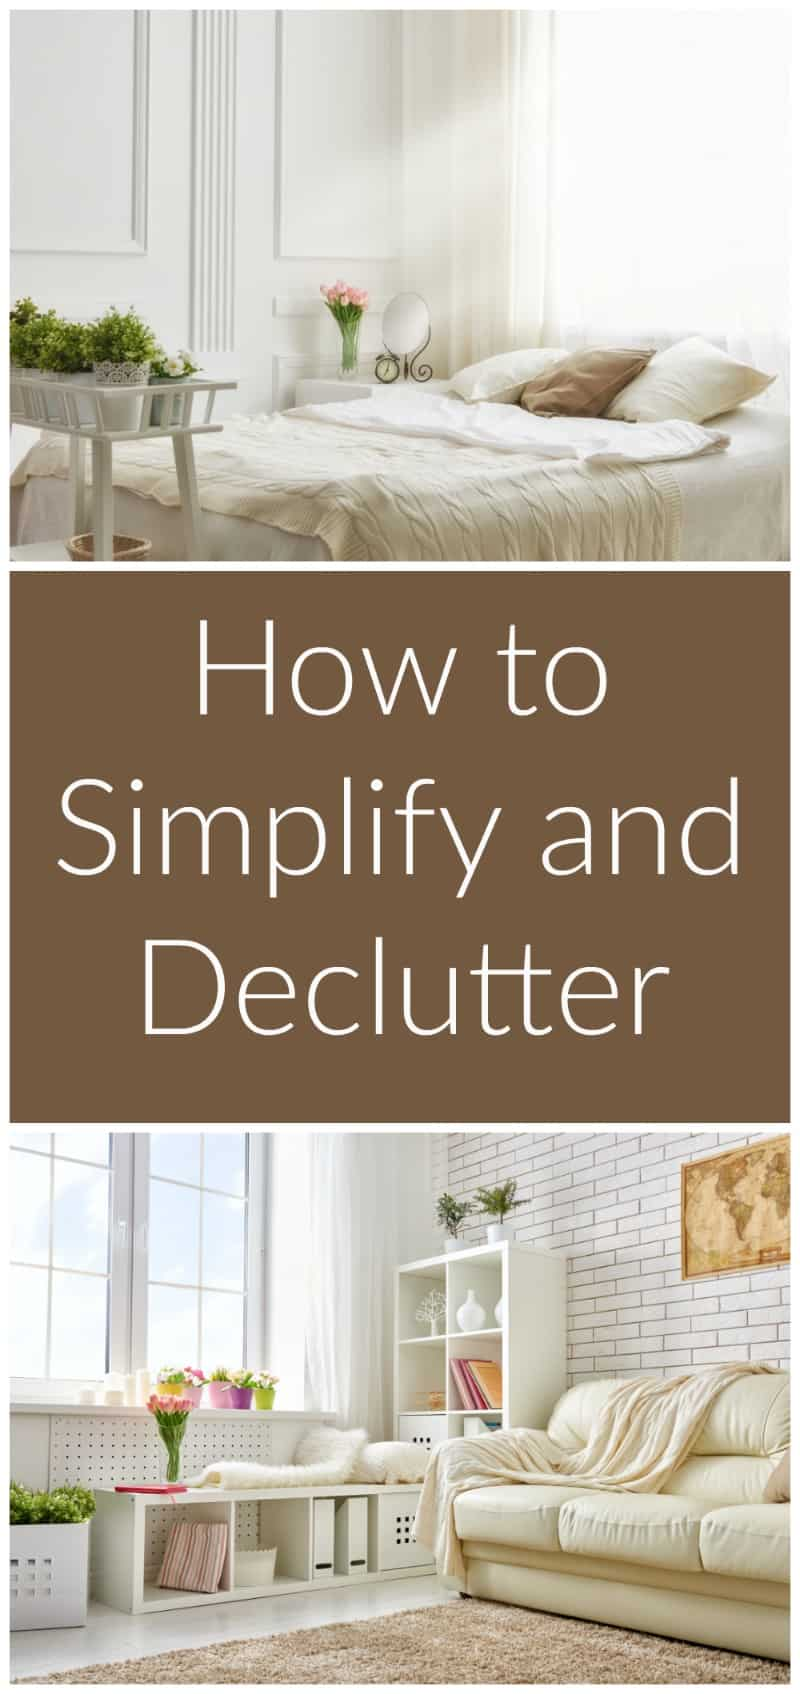 How to simplify and declutter